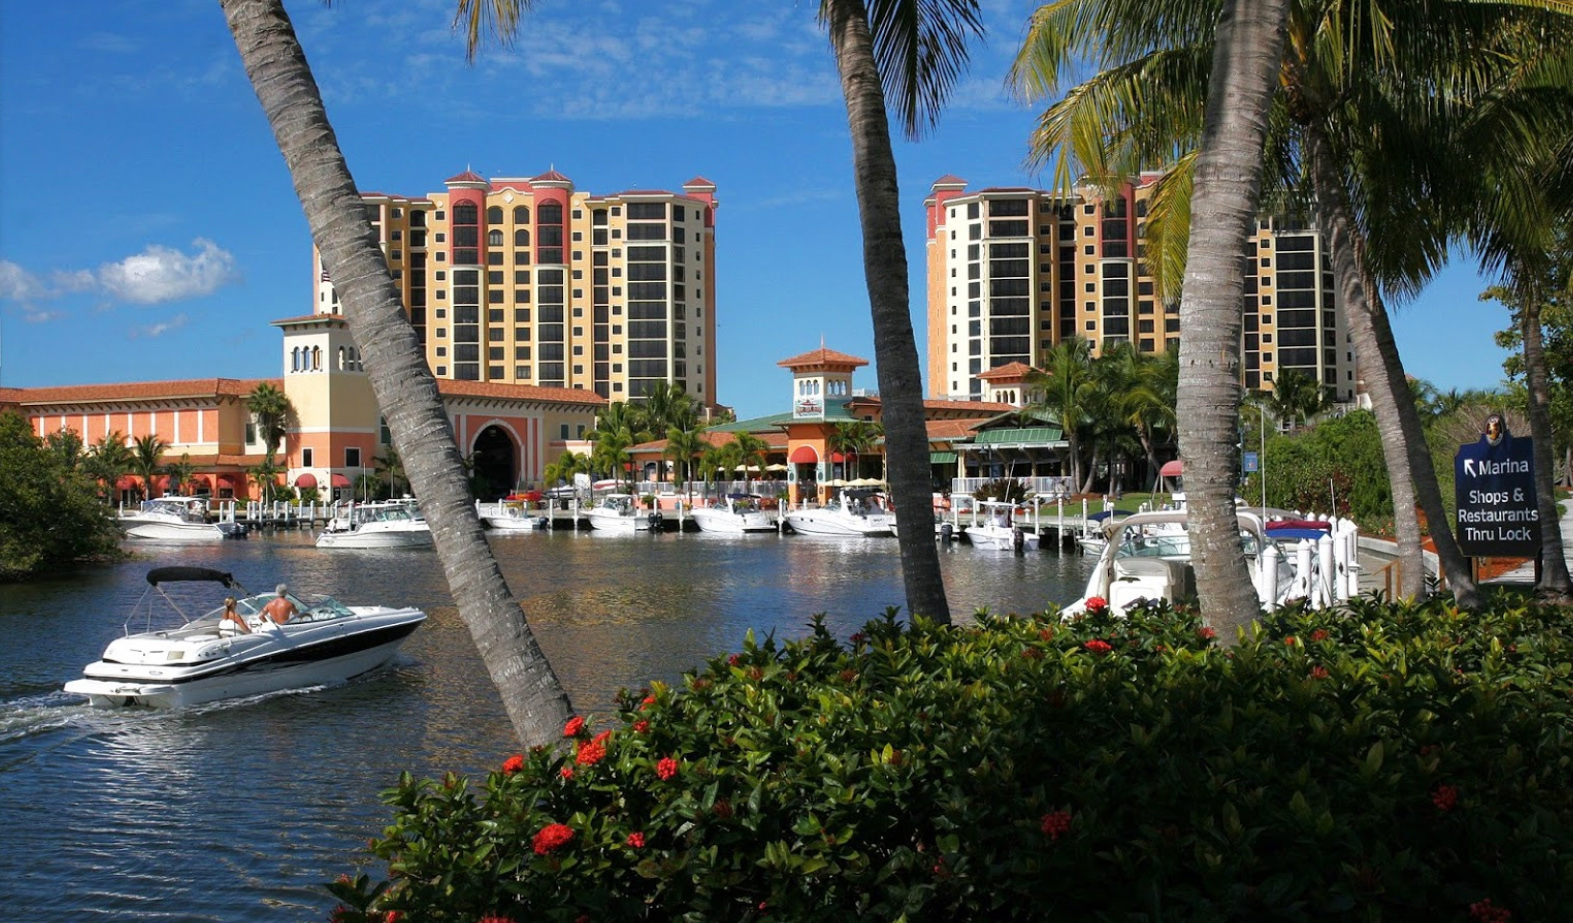 SWFL Waterfront Restaurants By Boat